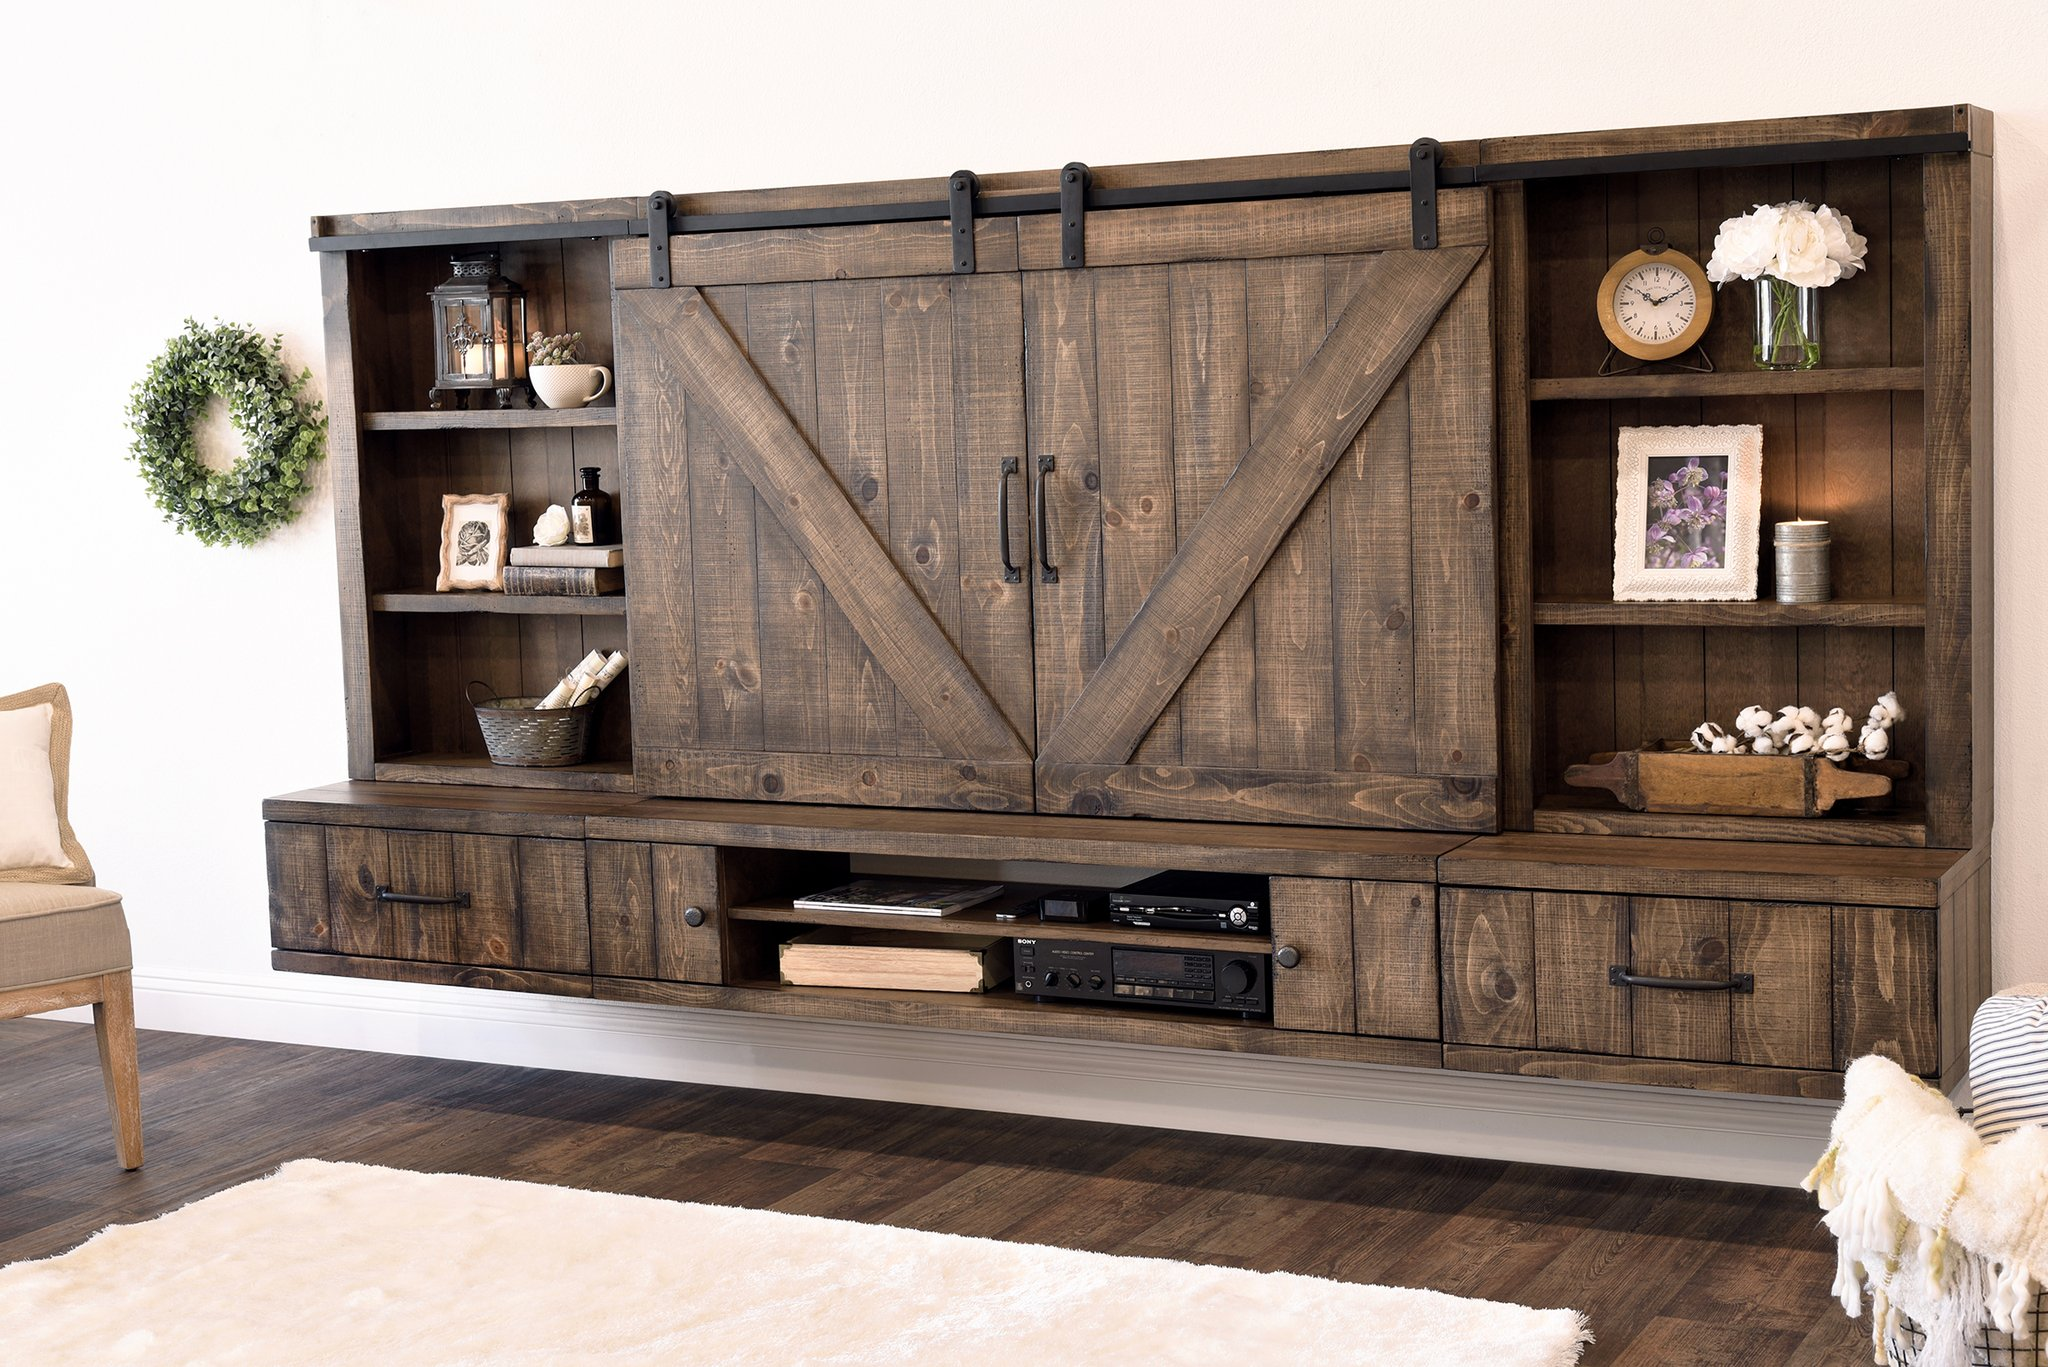 farmhouse barn door entertainment center floating stand wall woodwaves shelves system reclaimed hafele countertop brackets ribba shelf lack space saving desk ture wooden kitchen